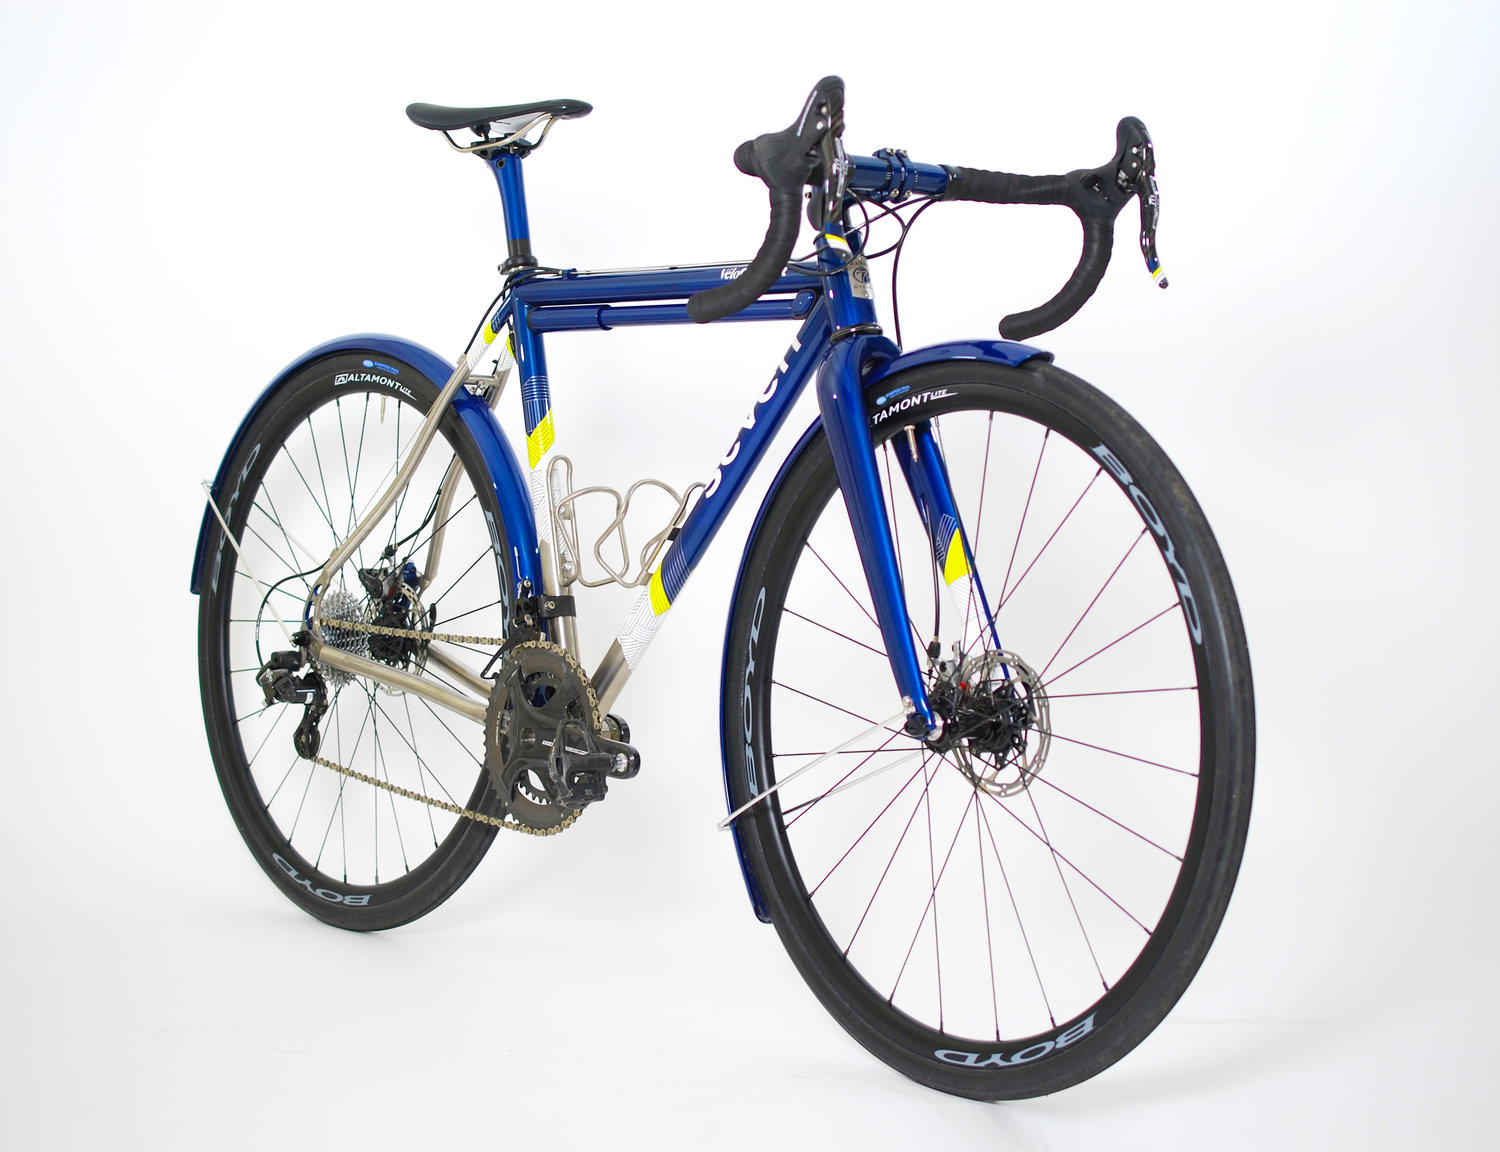 Freshly painted blue bike with yellow and white details